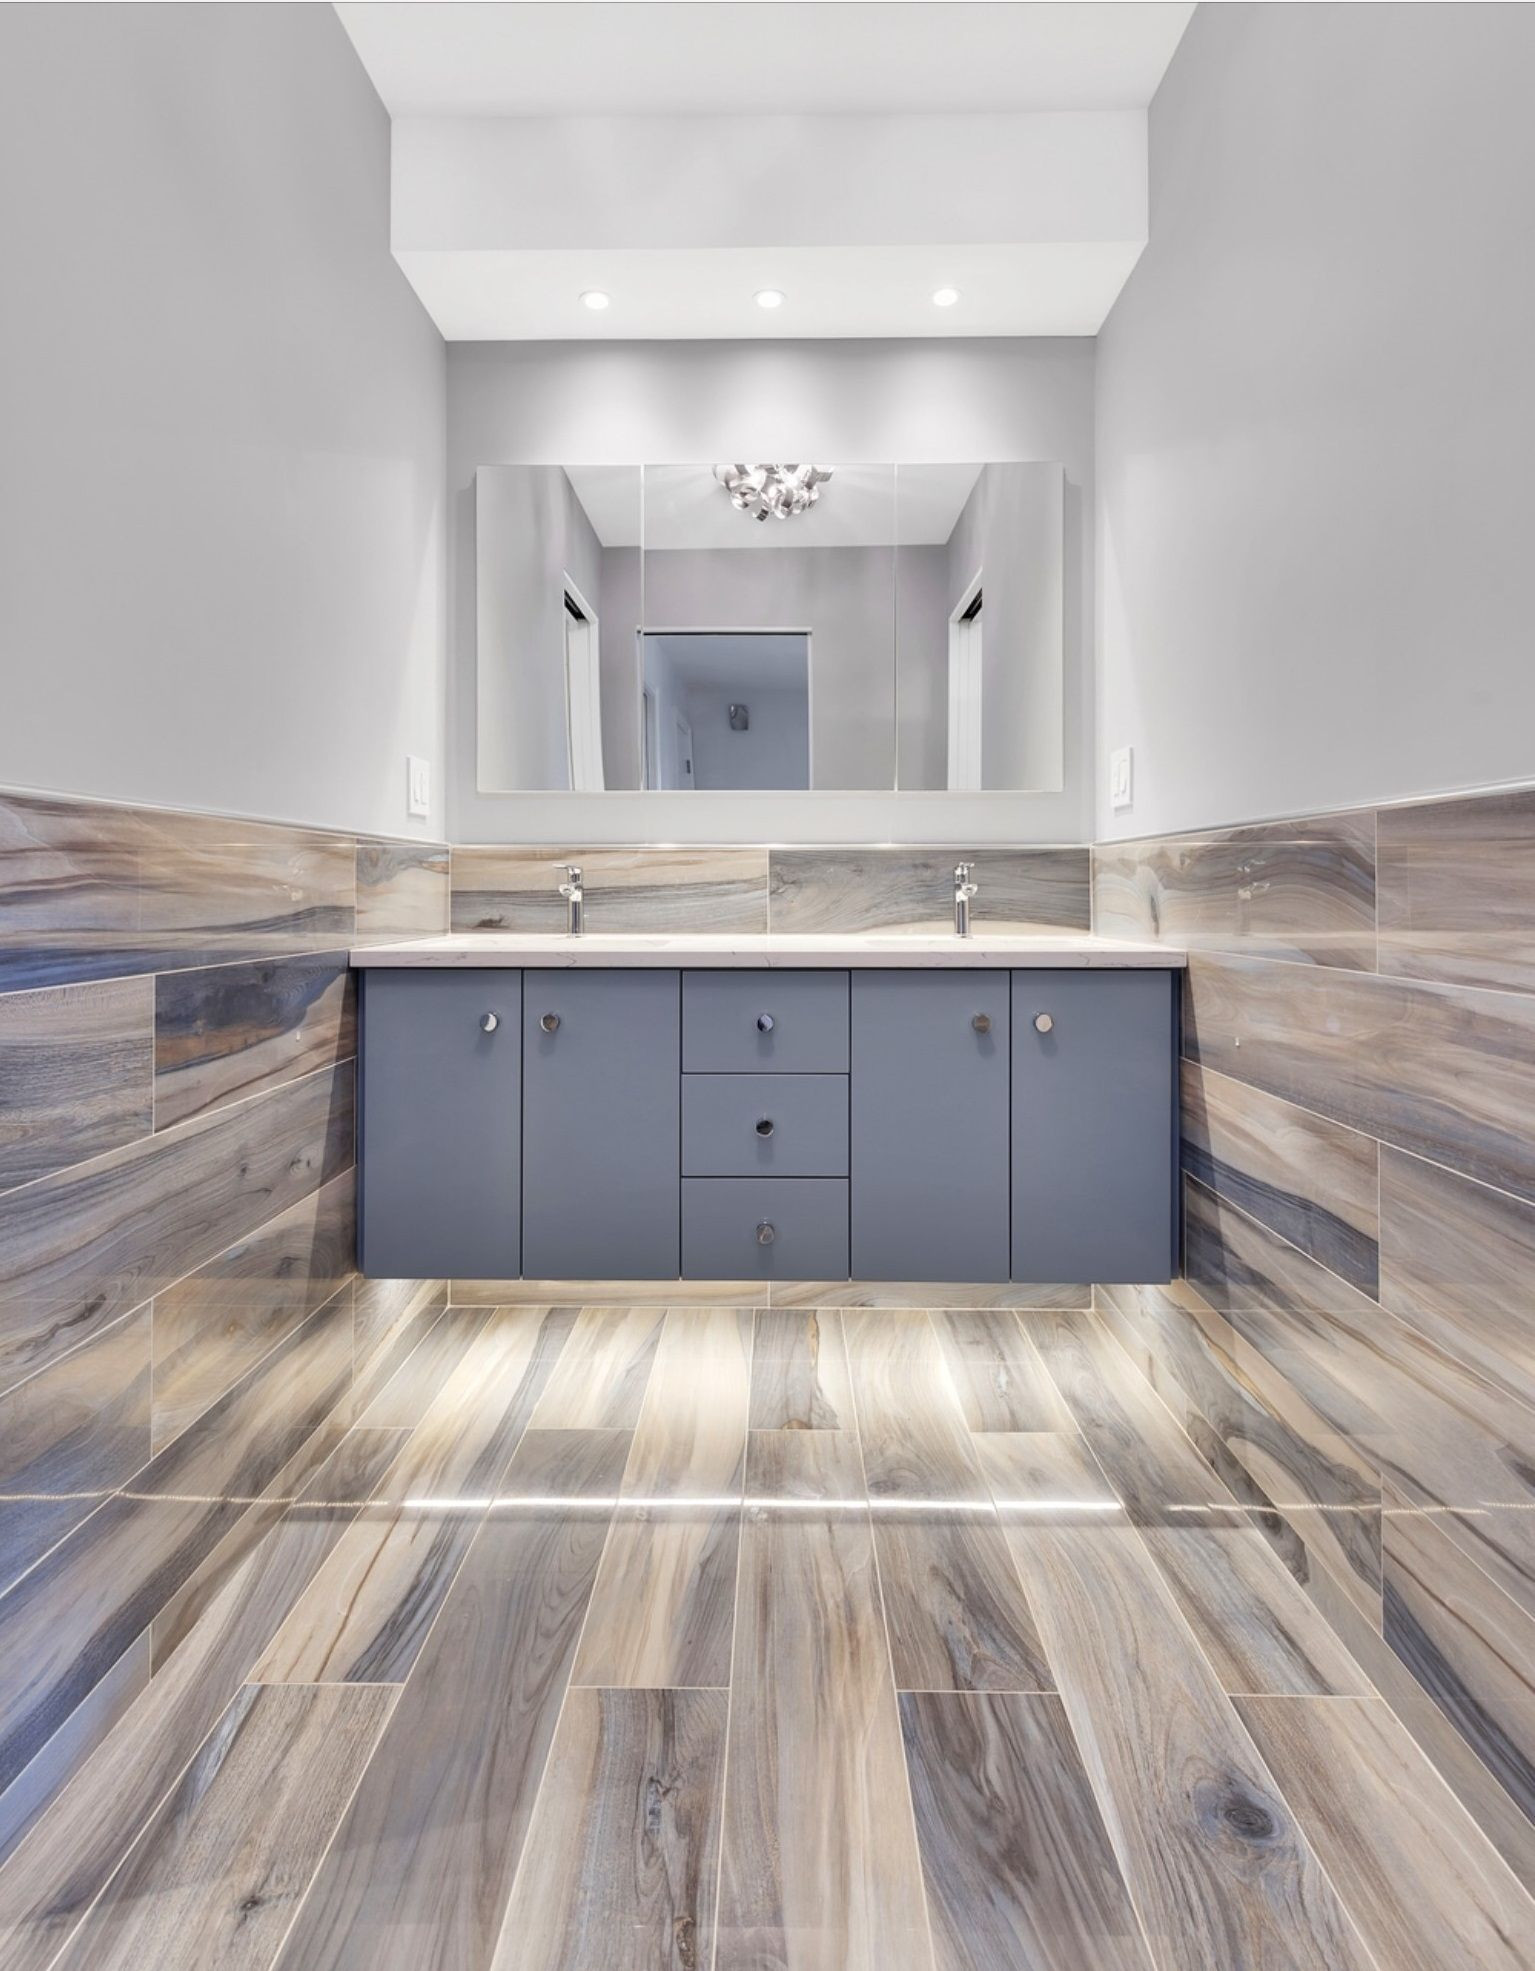 Hardwood Floor Refinishing Stamford Ct Of Artistic Tile I Our Wood Look Kauri Plank In Tasman Blue Adds within Artistic Tile I Our Wood Look Kauri Plank In Tasman Blue Adds Refinement and Warmth to This Upper East Side Ny Master Design by Stacy Miles Of Our